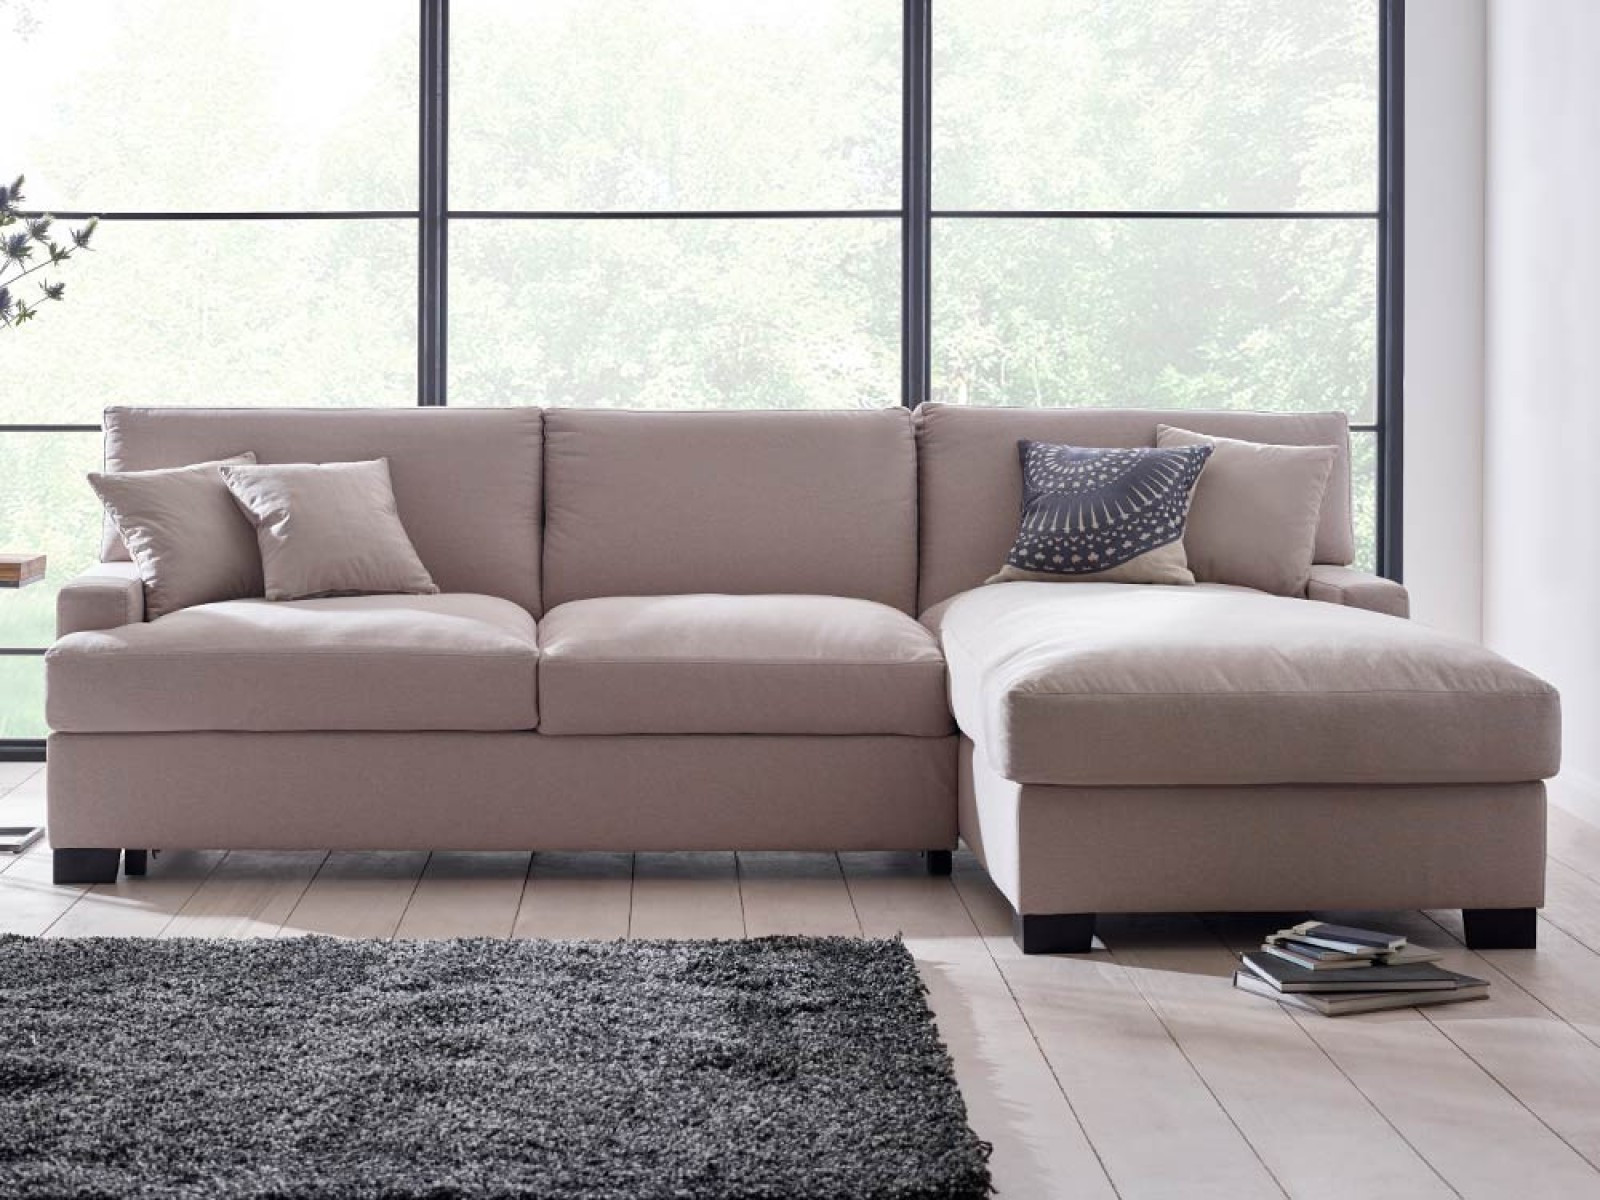 Best ideas about Corner Sofa Bed . Save or Pin Daphne Corner Sofa Bed Now.